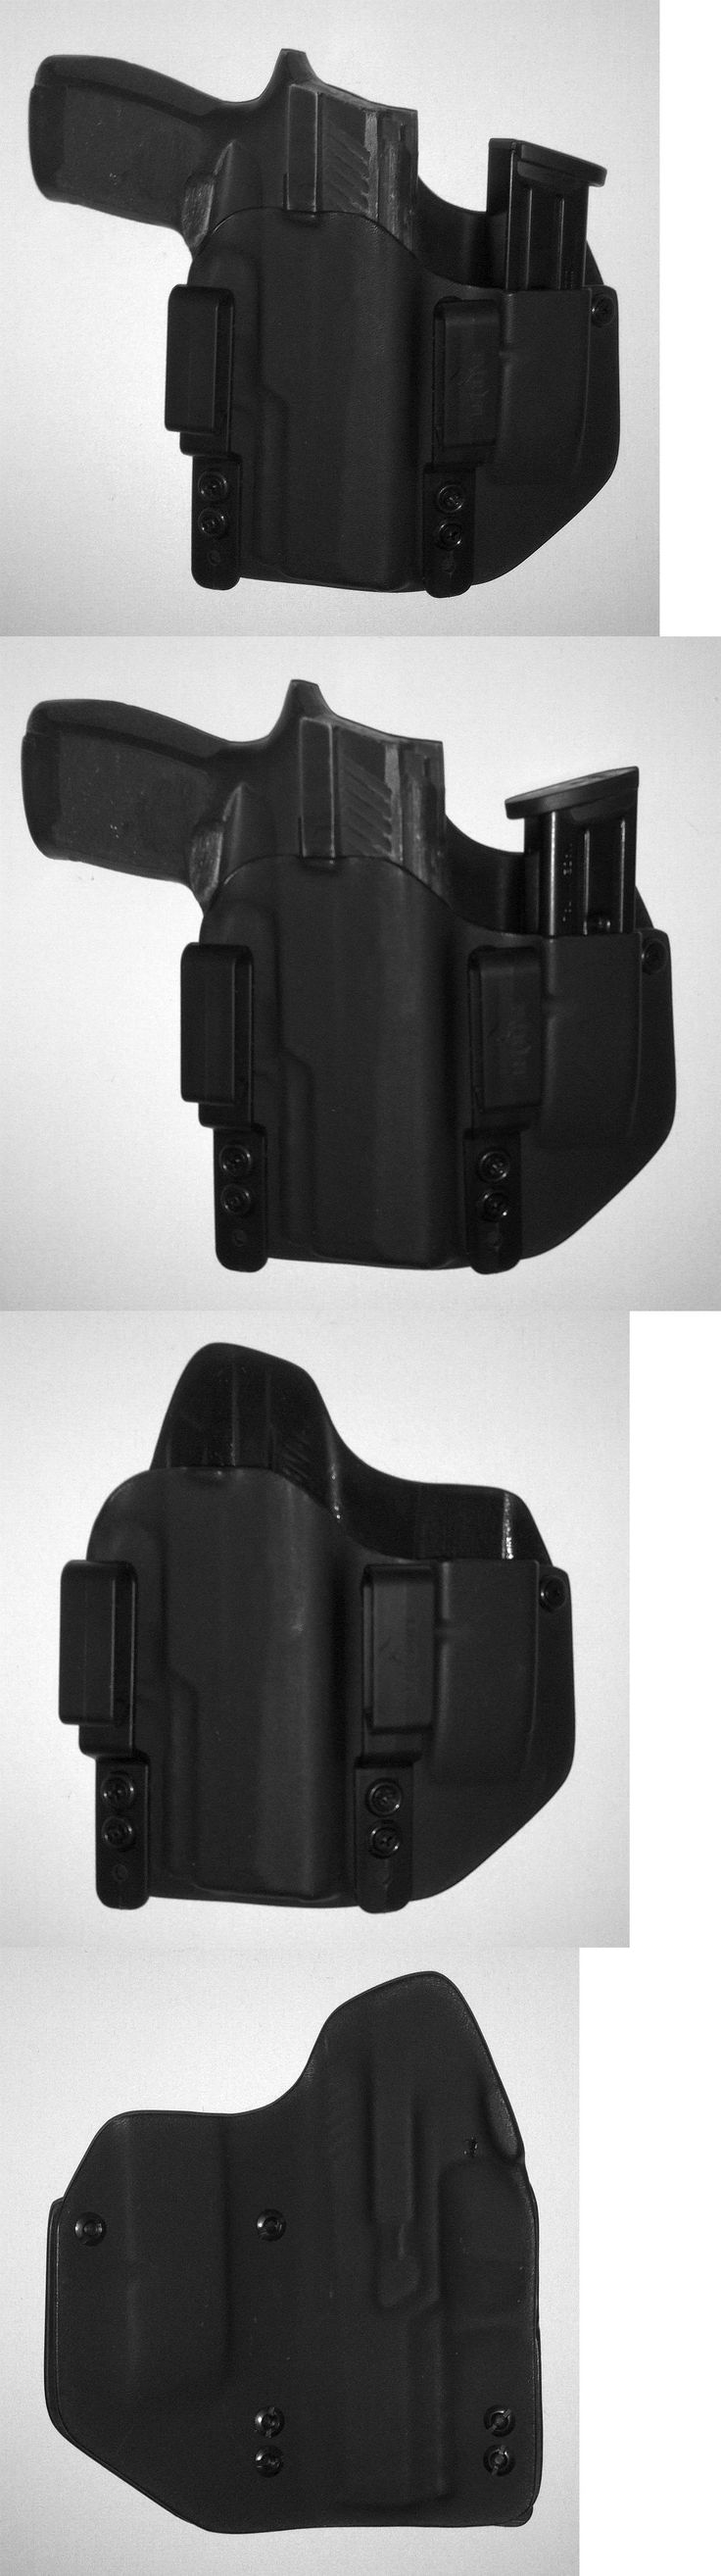 Holsters 177885: Custom Kydex Iwb Holster With Extra Mag Carrier For Sig Sauer P 320 Compact -> BUY IT NOW ONLY: $69 on eBay!